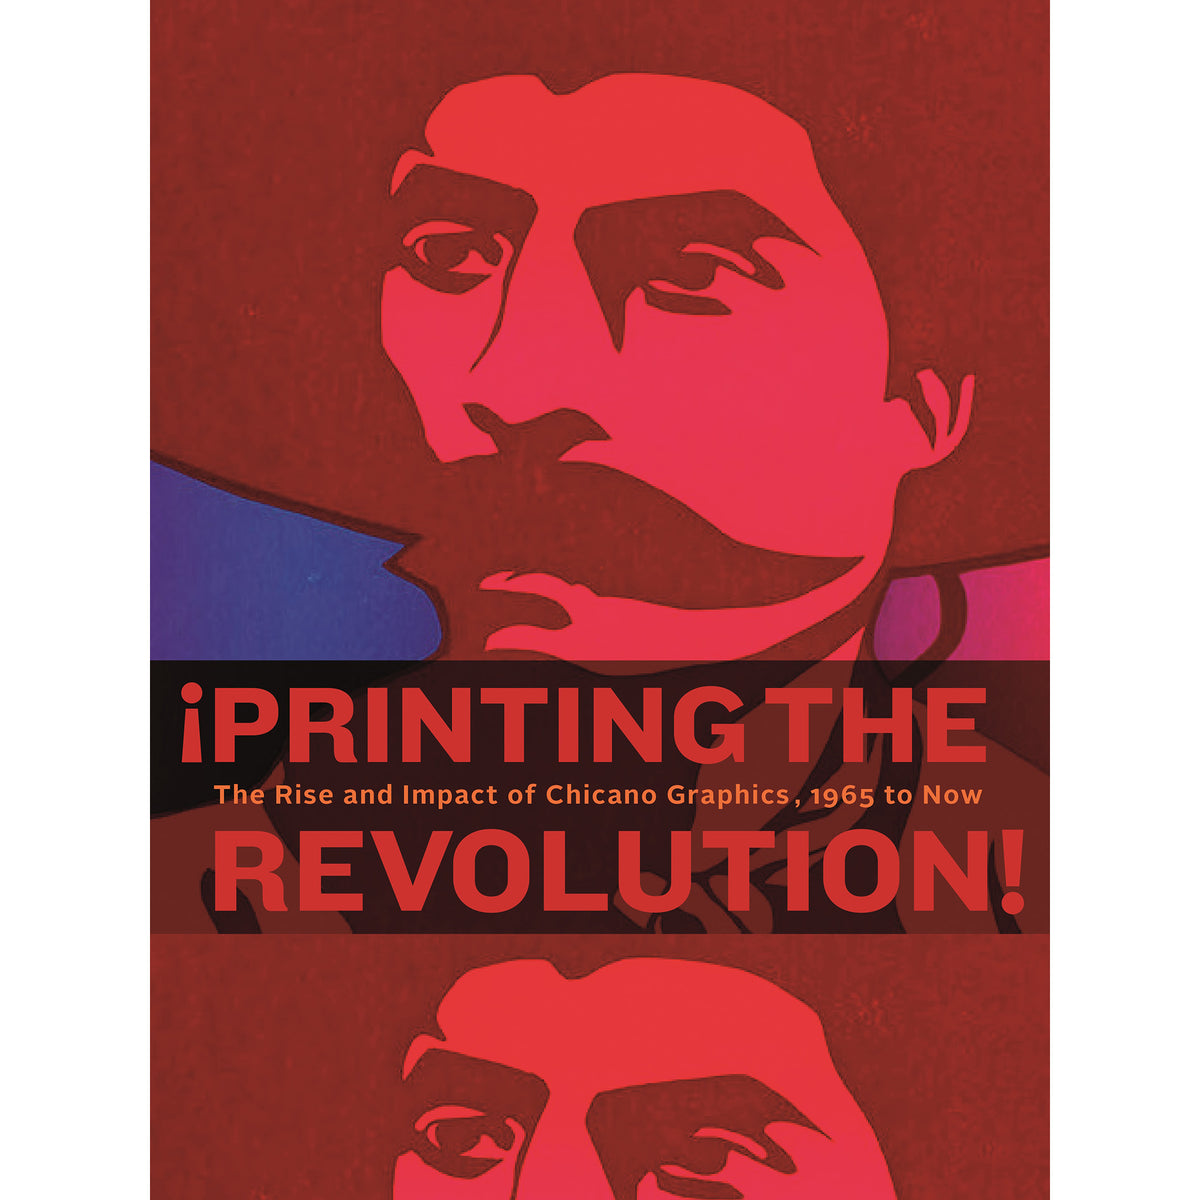 !Printing the Revolution!: The Rise and Impact of Chicano Graphics 1965 to Now